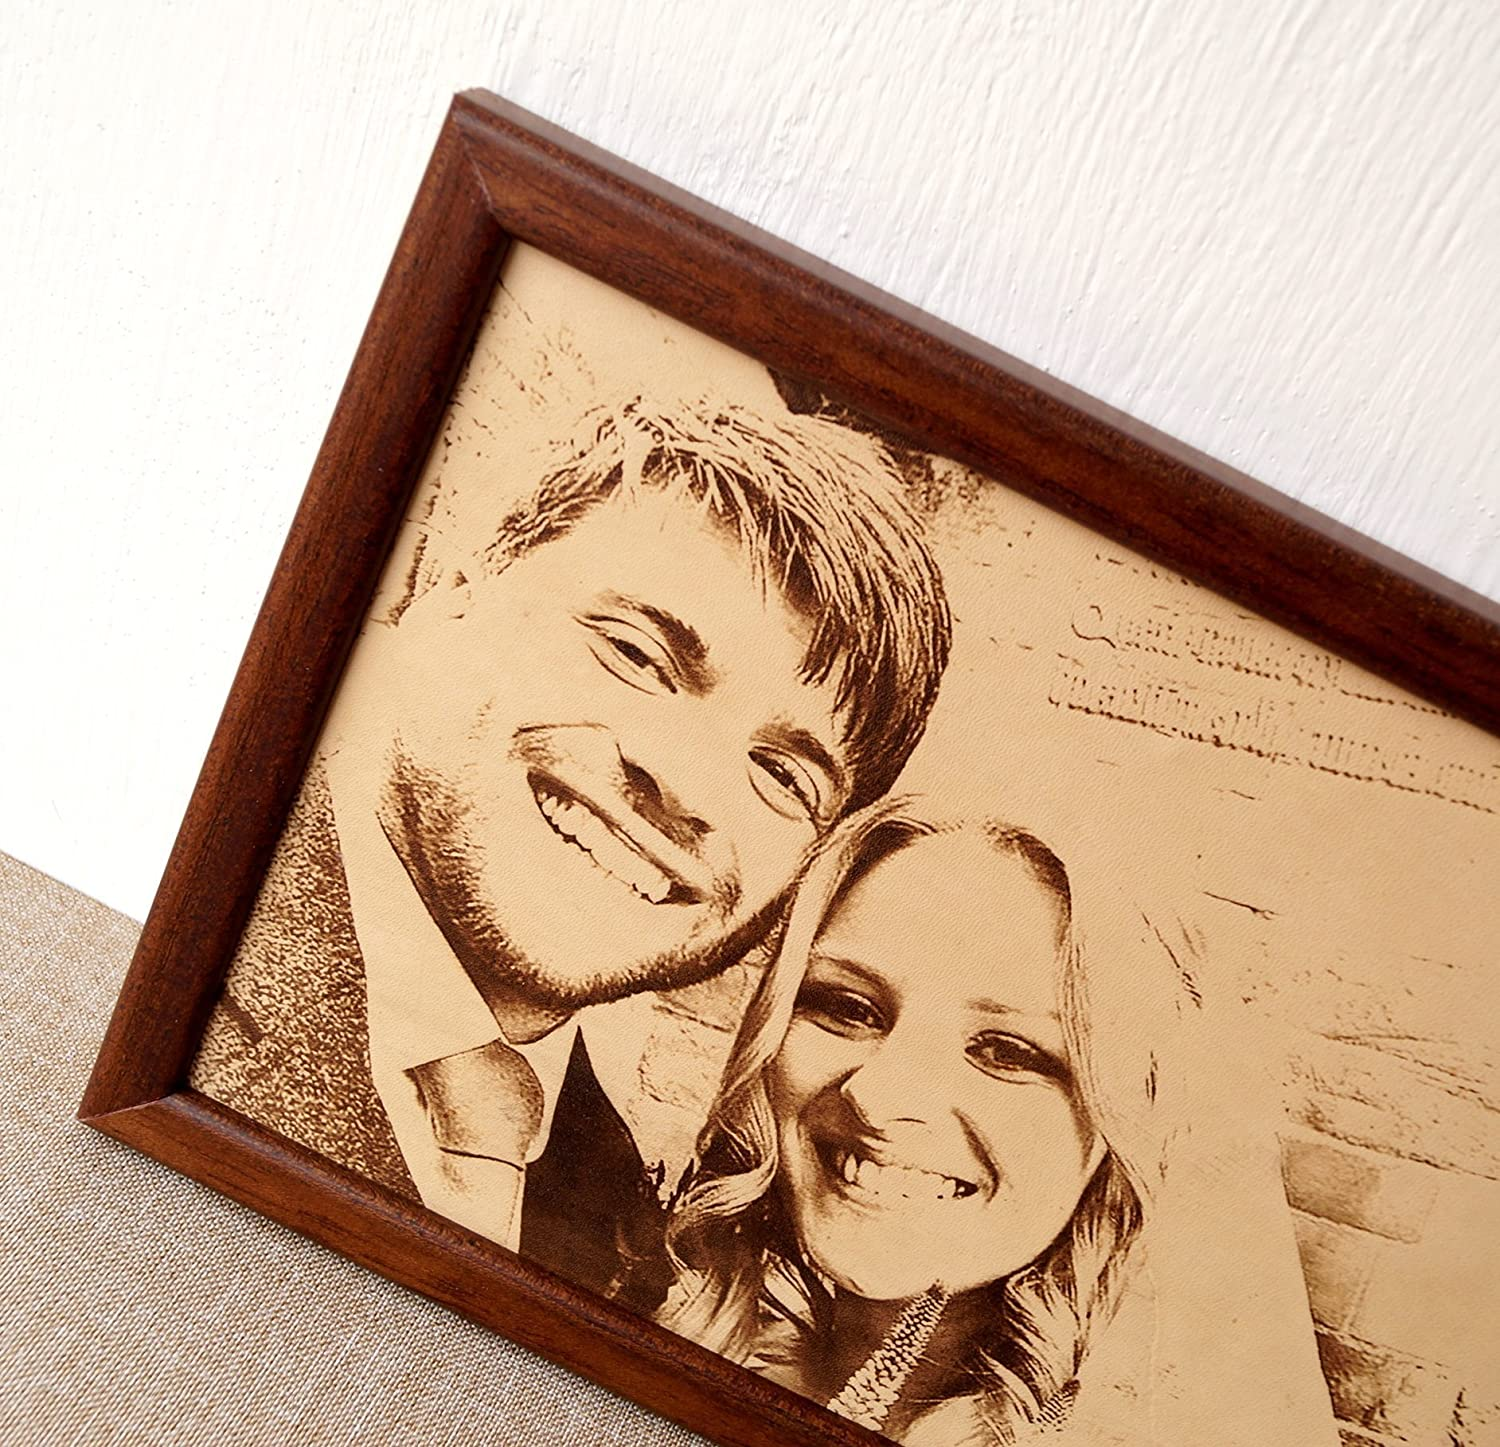 3rd wedding anniversary gift idea, custom engraved framed picture, unique giftLeather photograph, engraved picture on real leather